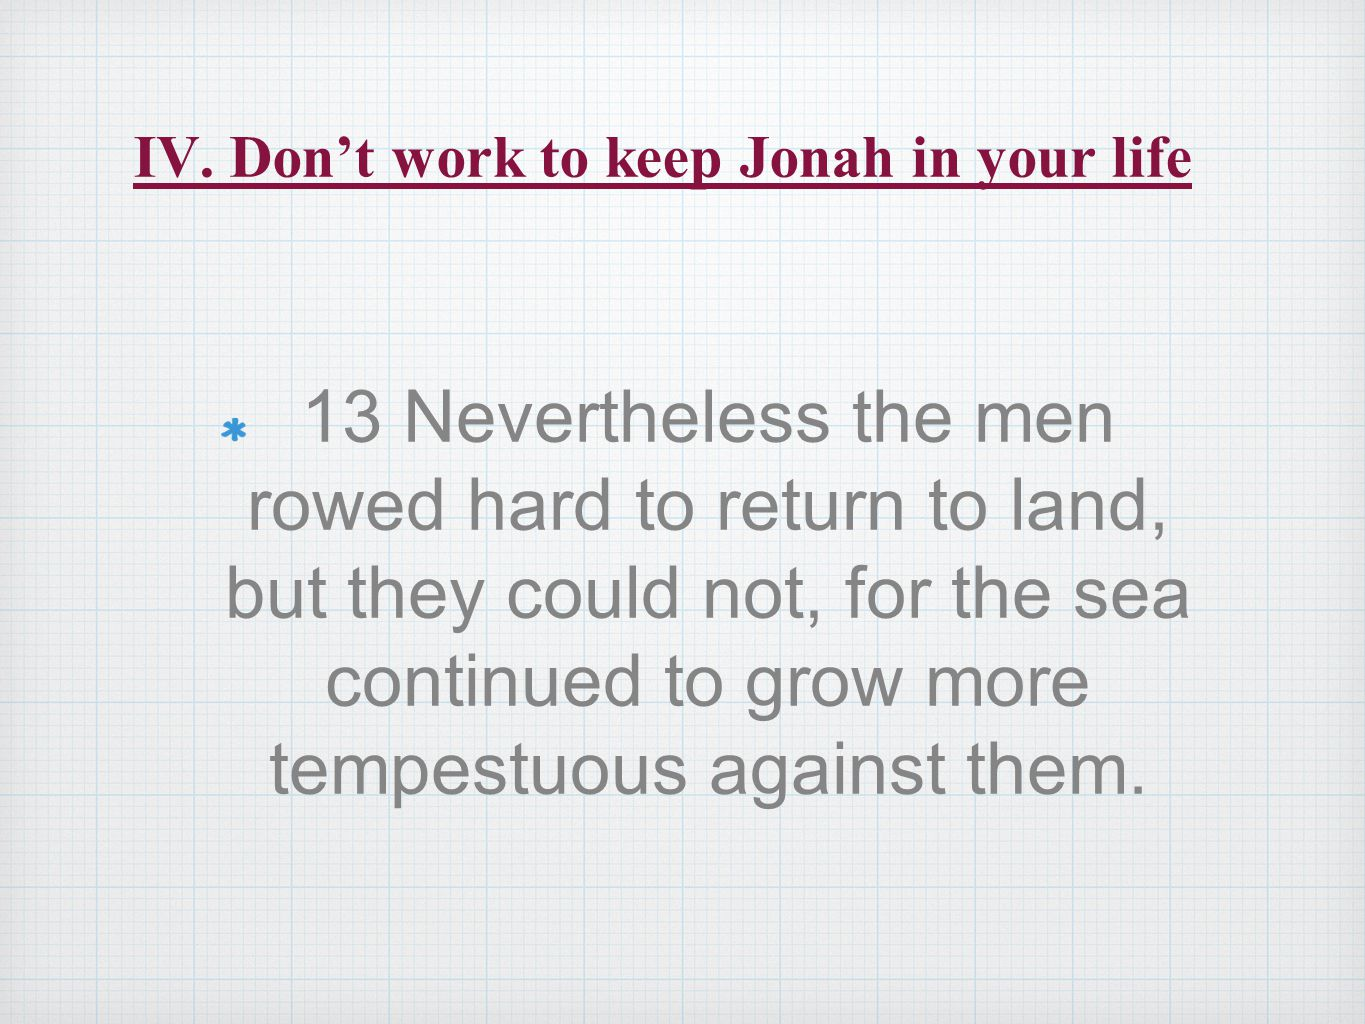 IV. Don't work to keep Jonah in your life